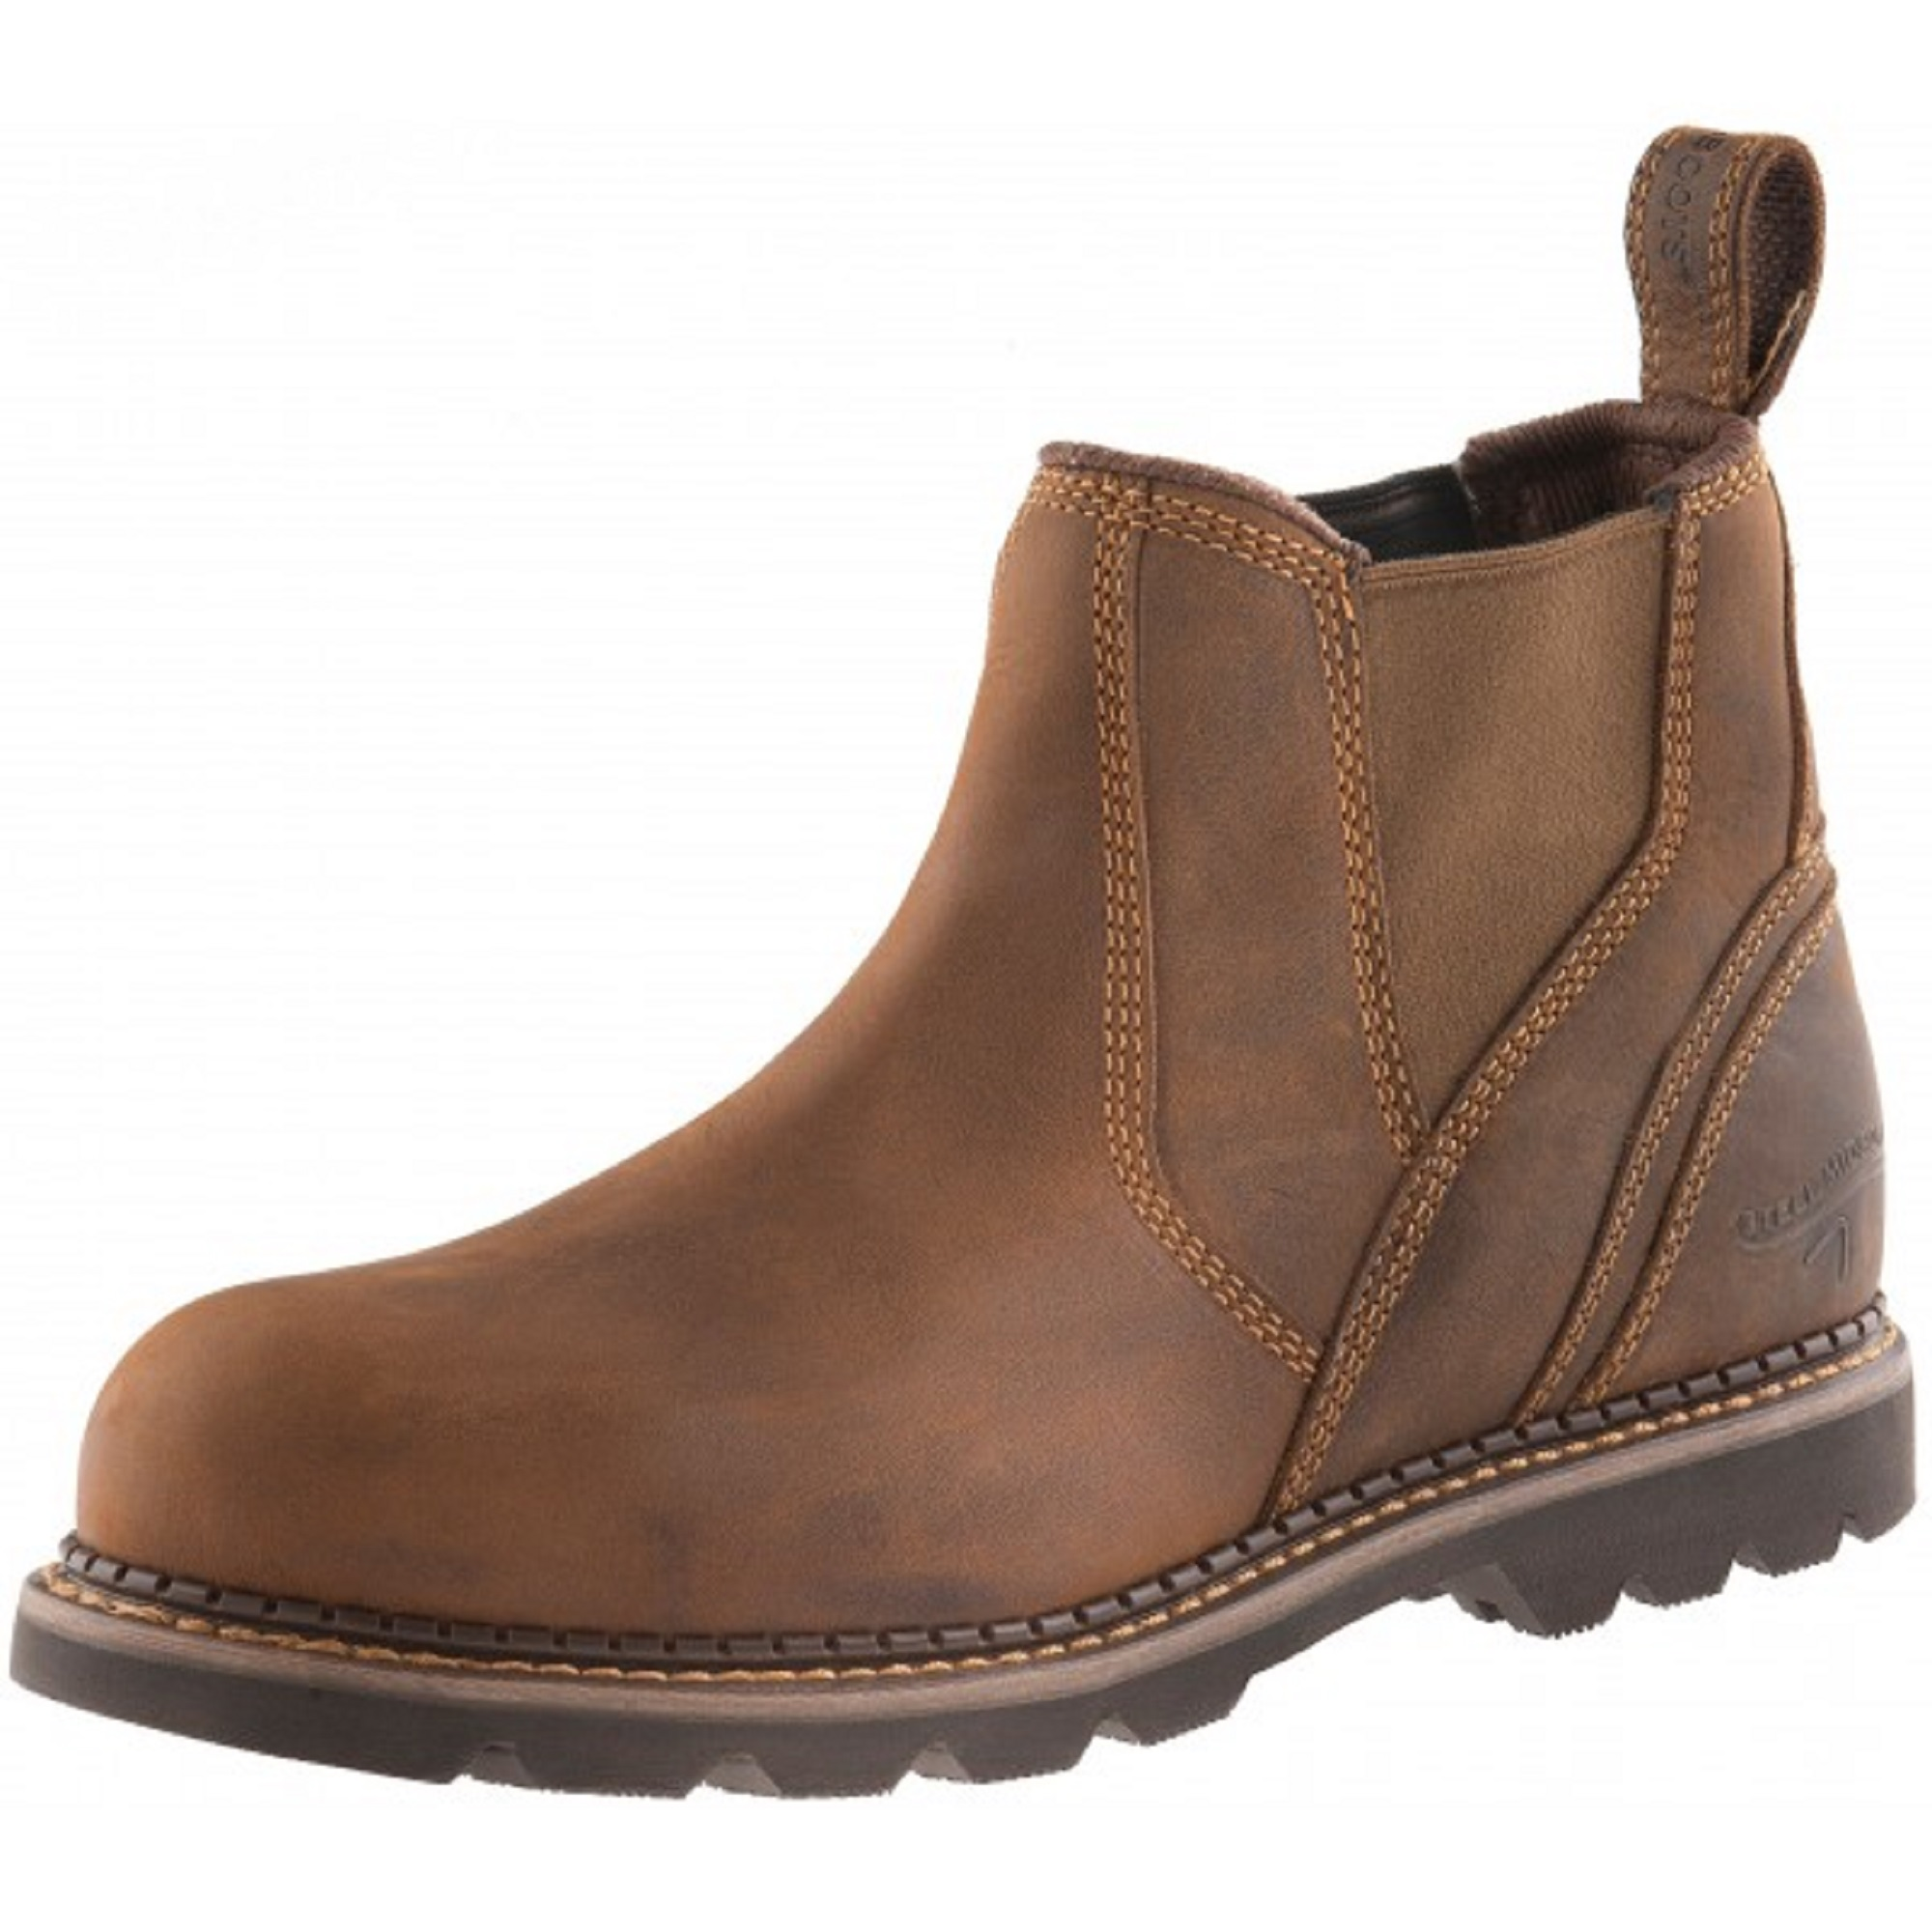 Waxed brown leather Buckler B1555SM safety dealer boot with Buckler branded pull-on tab at the heel and elastic ankle gusset